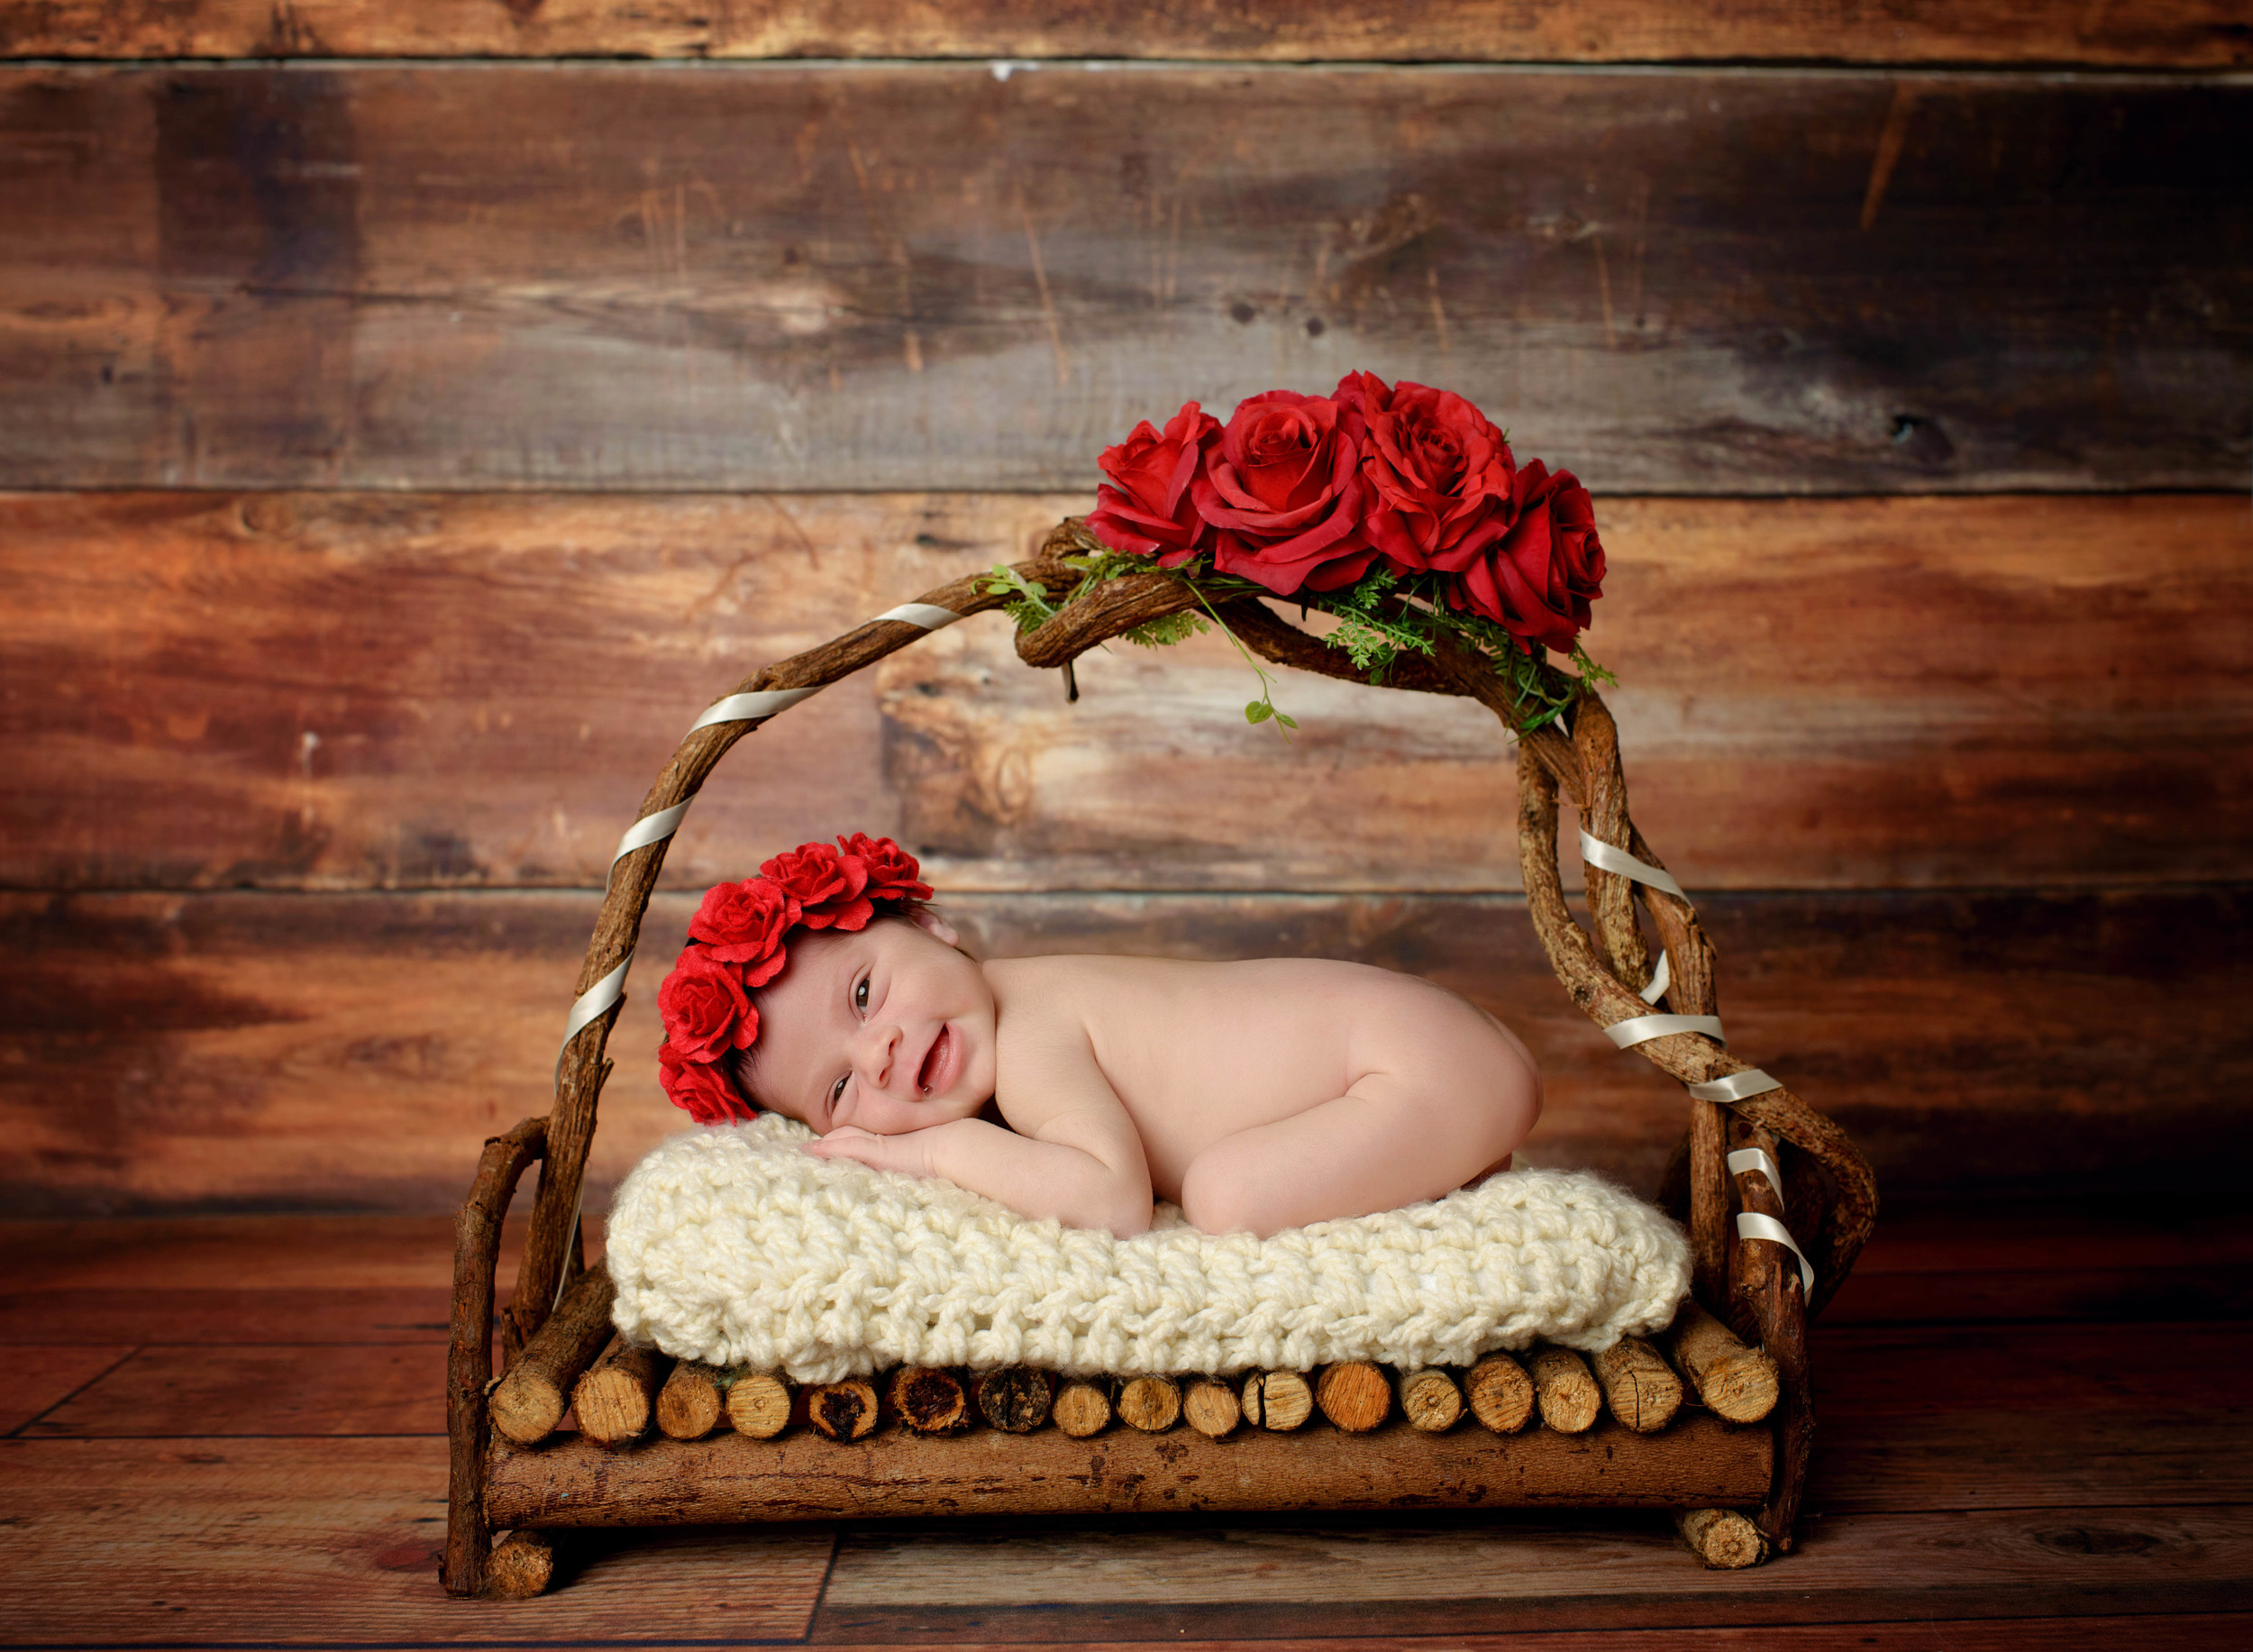 Newborn bed with roses